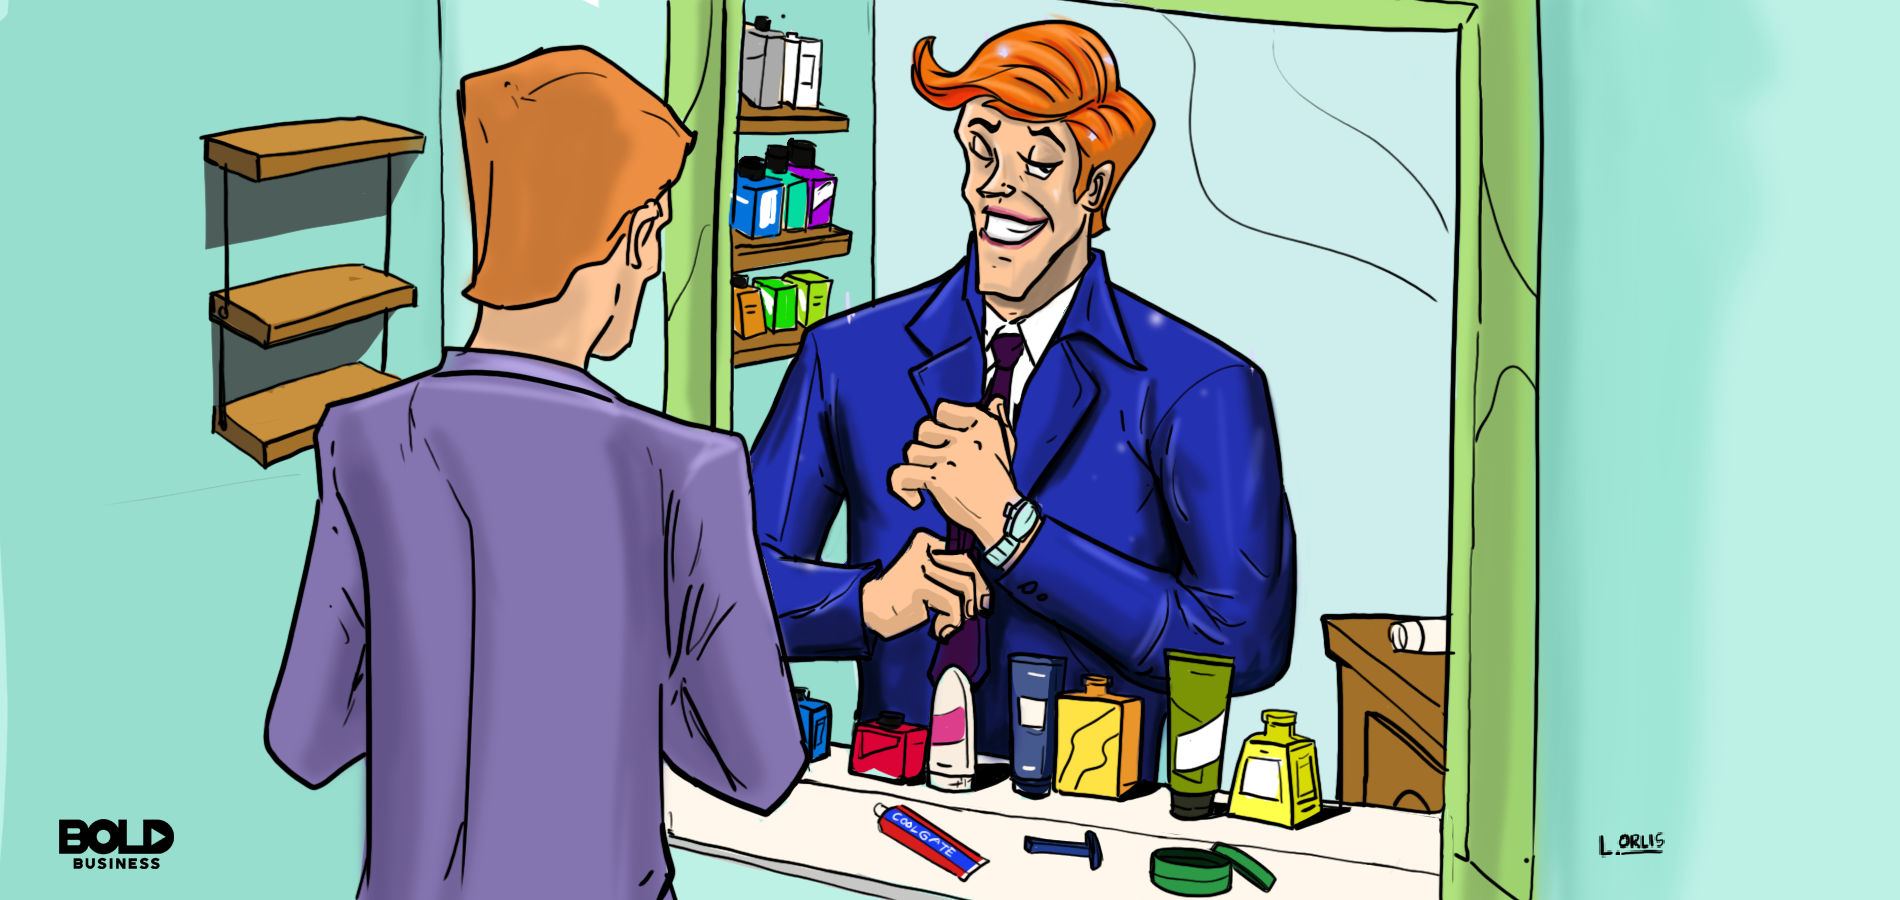 Cartoon of a man grooming in front of the mirror.